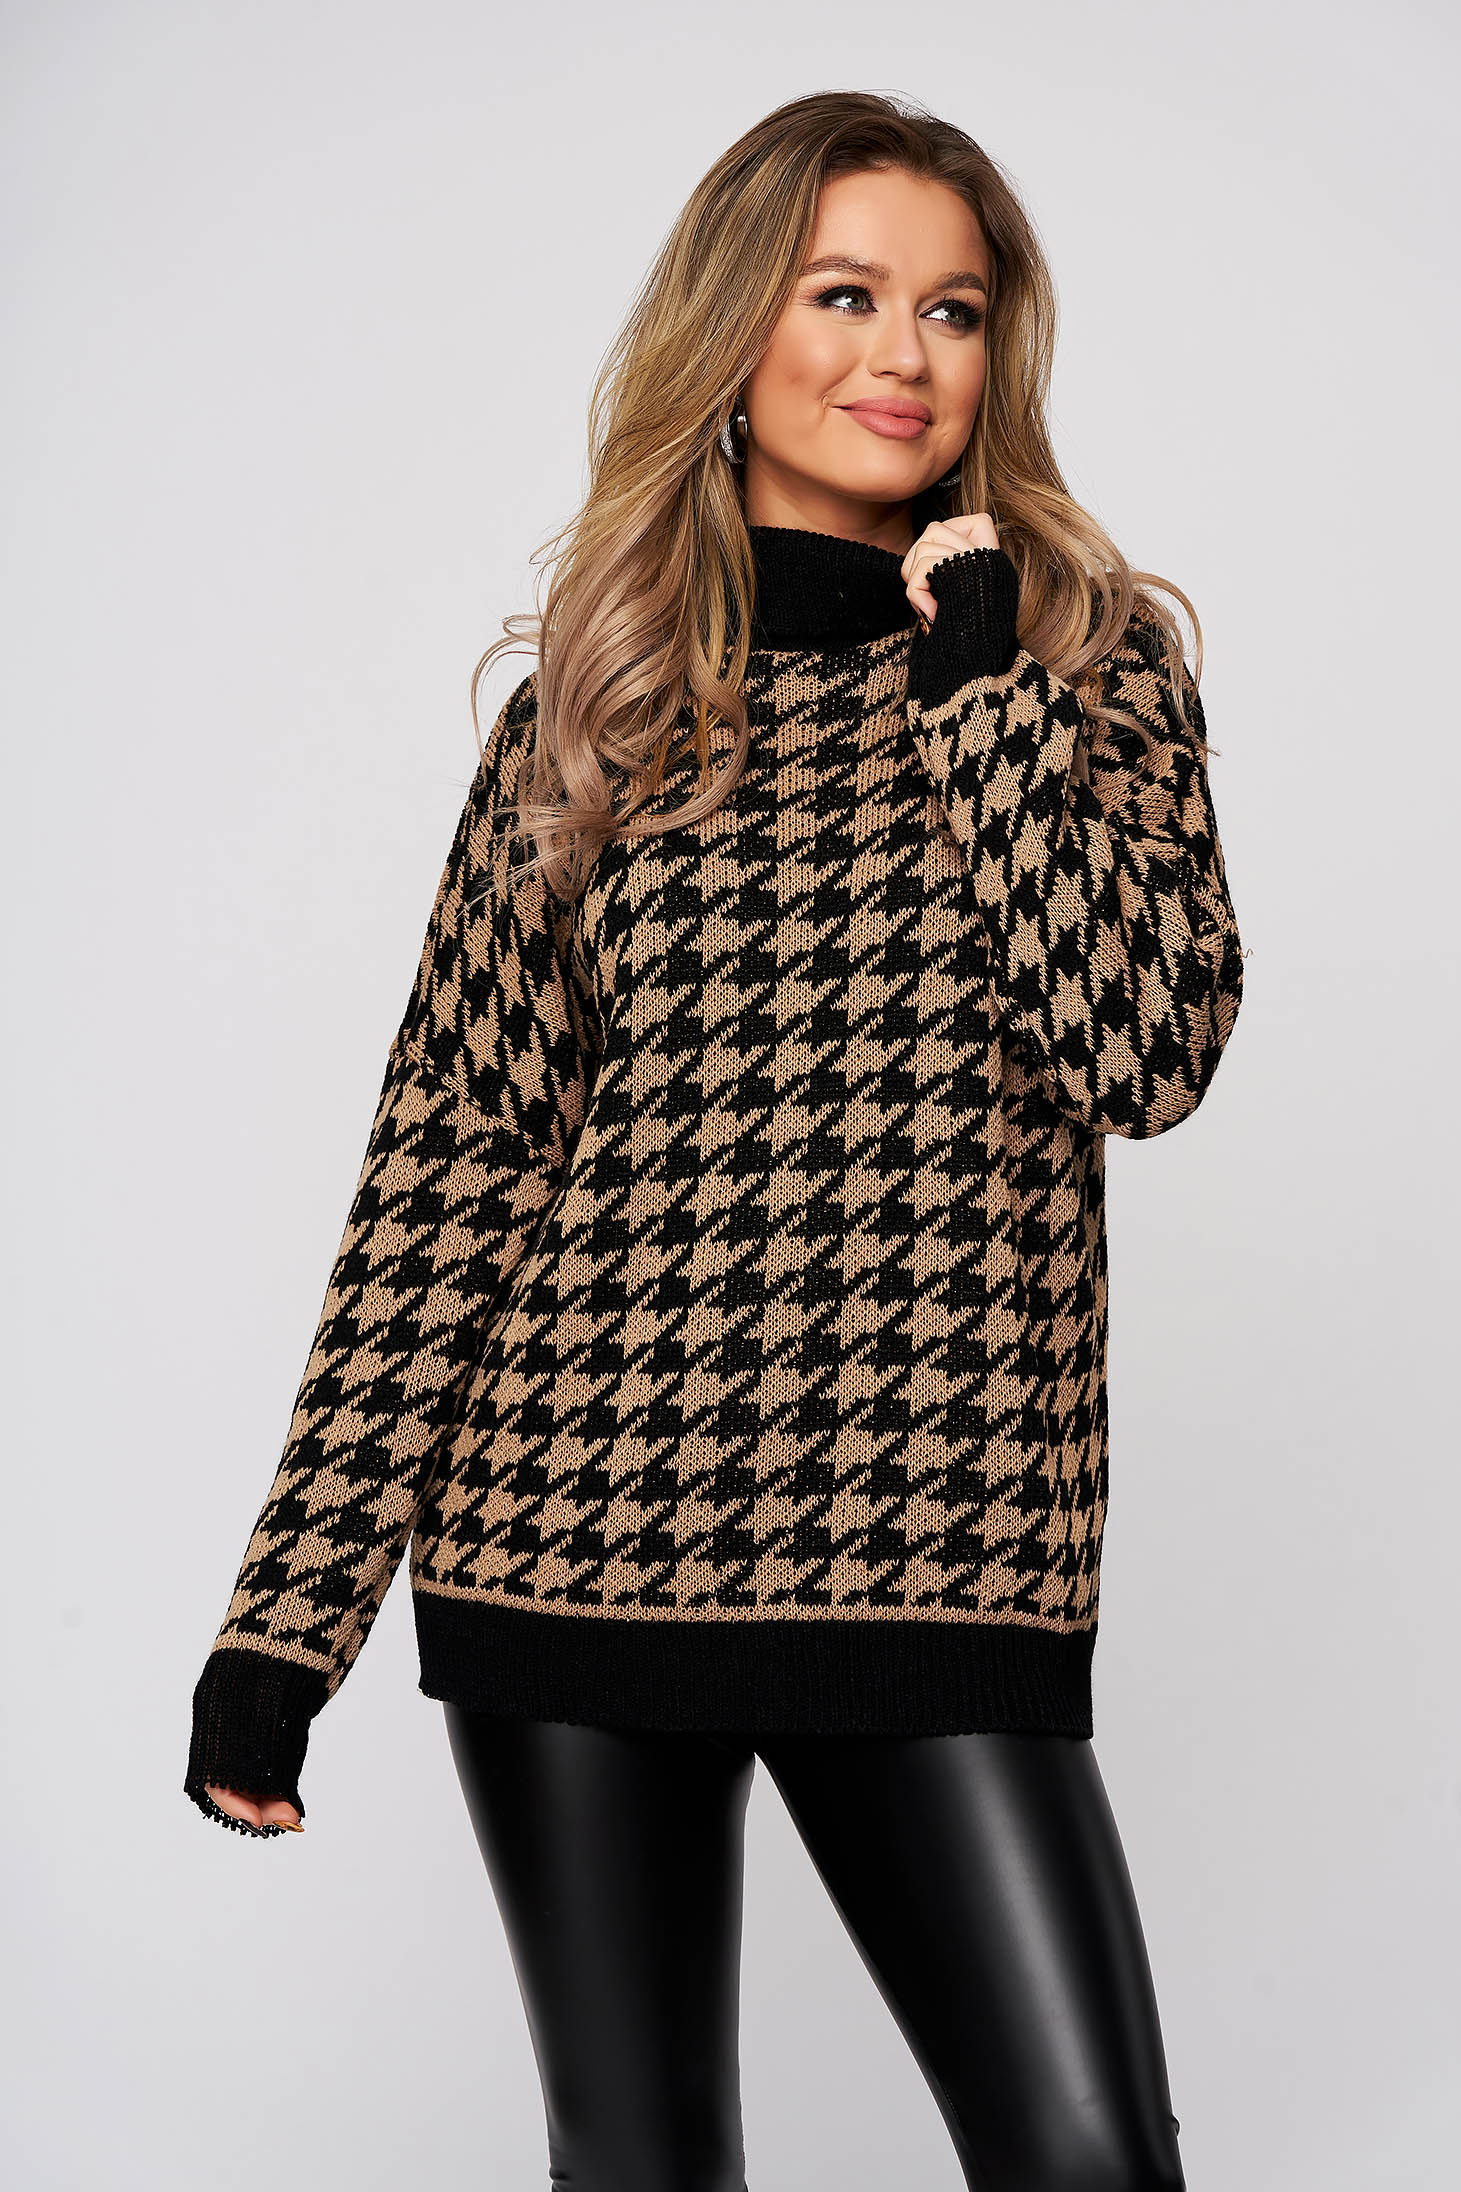 Sweater brown dogtooth knitted from elastic fabric flared with turtle neck